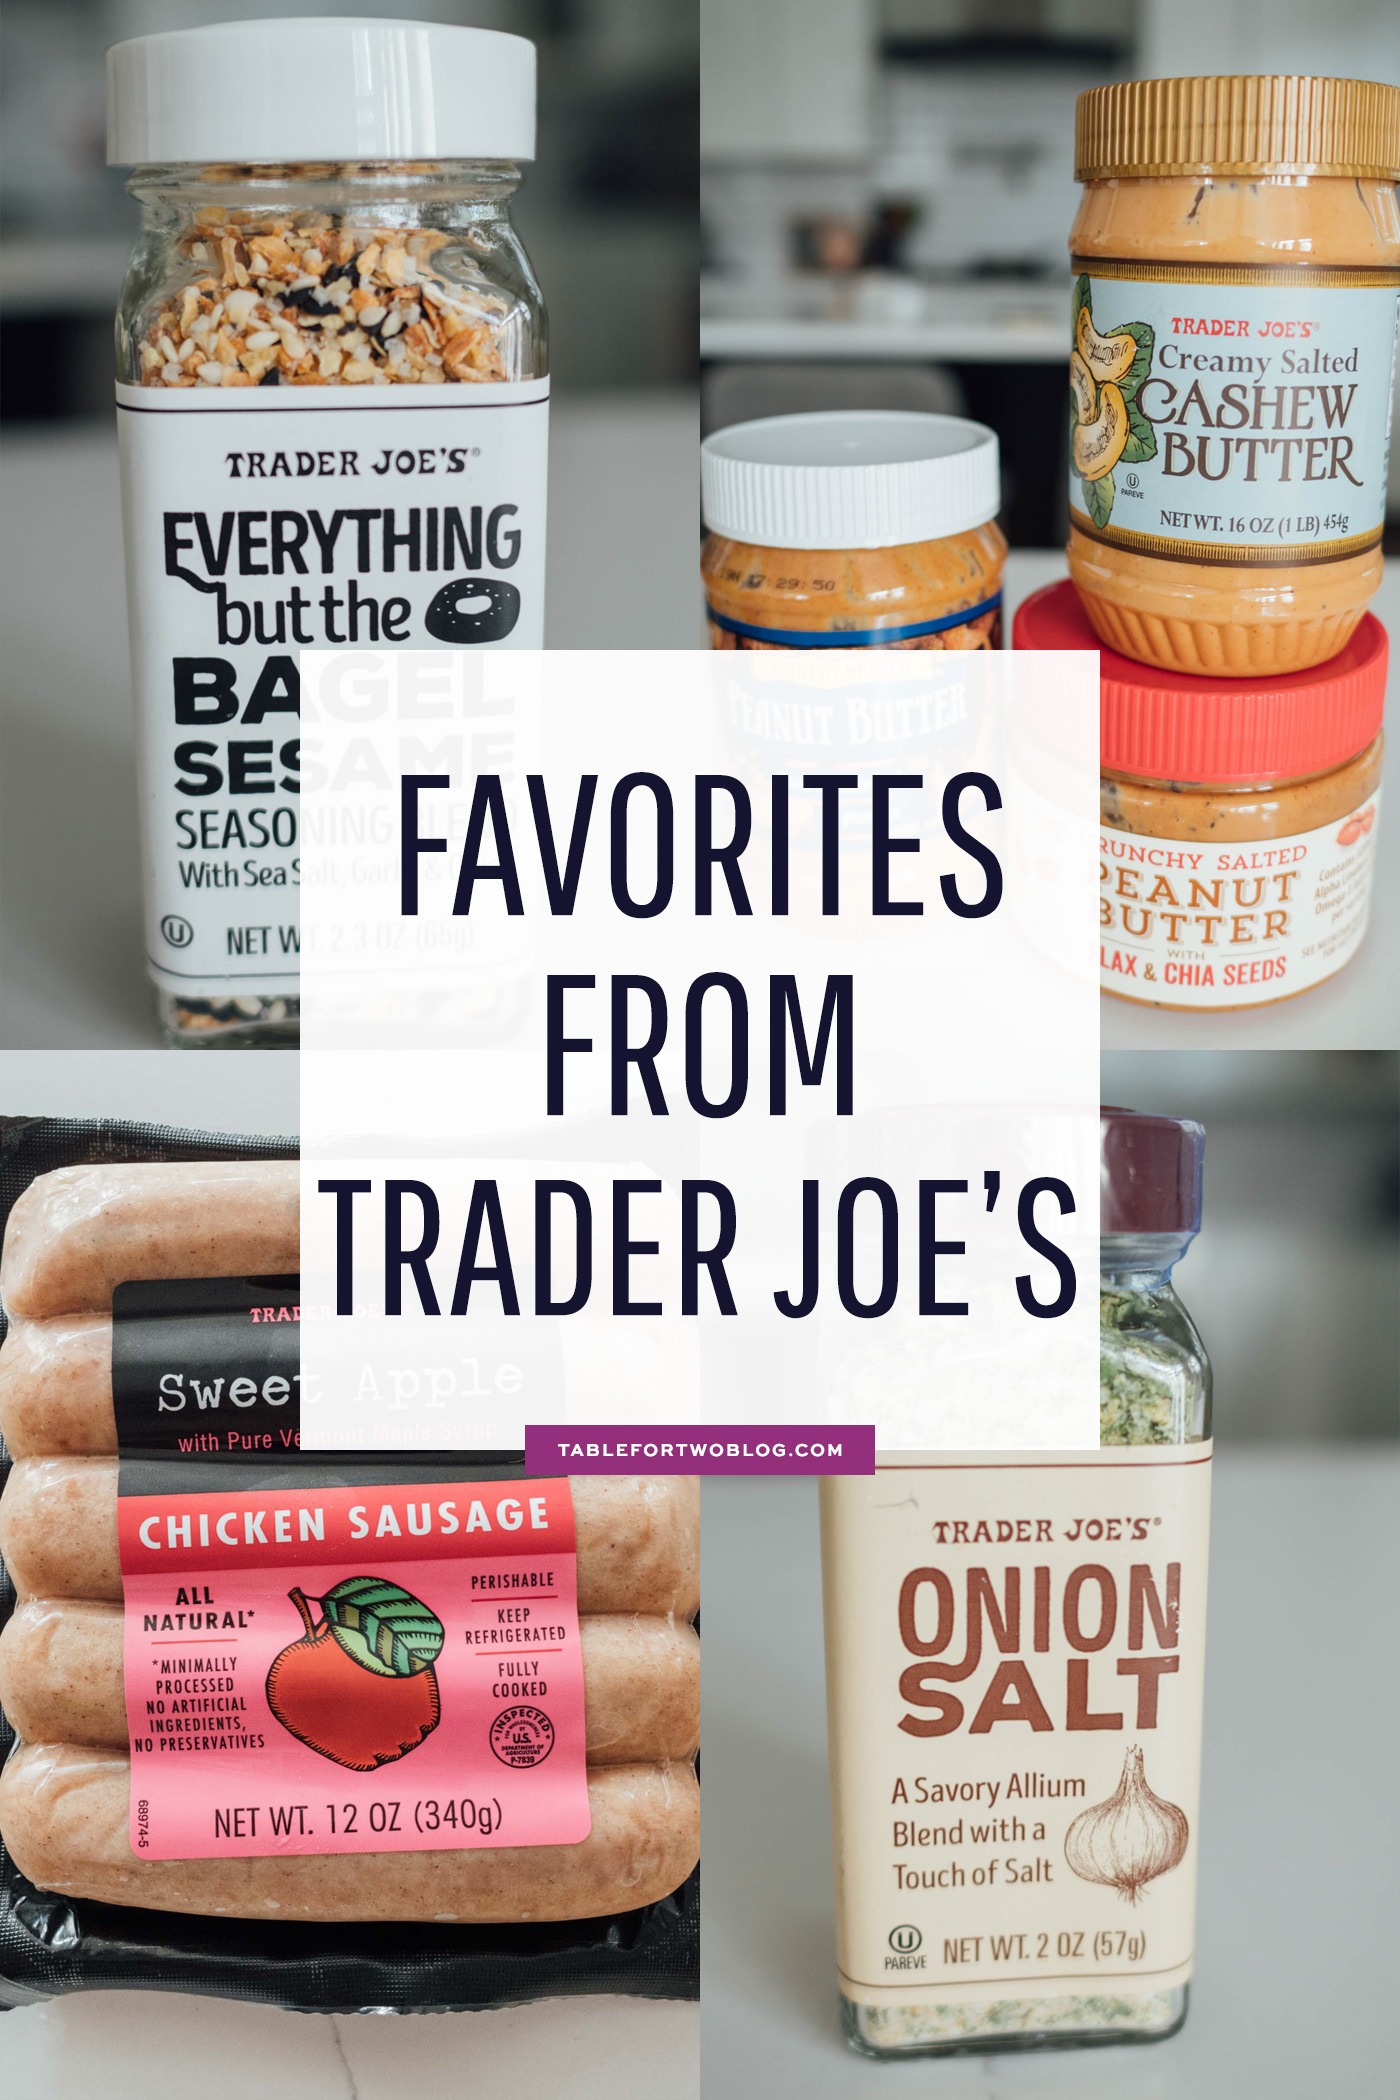 All my favorite items from Trader Joe's compiled into one giant list!